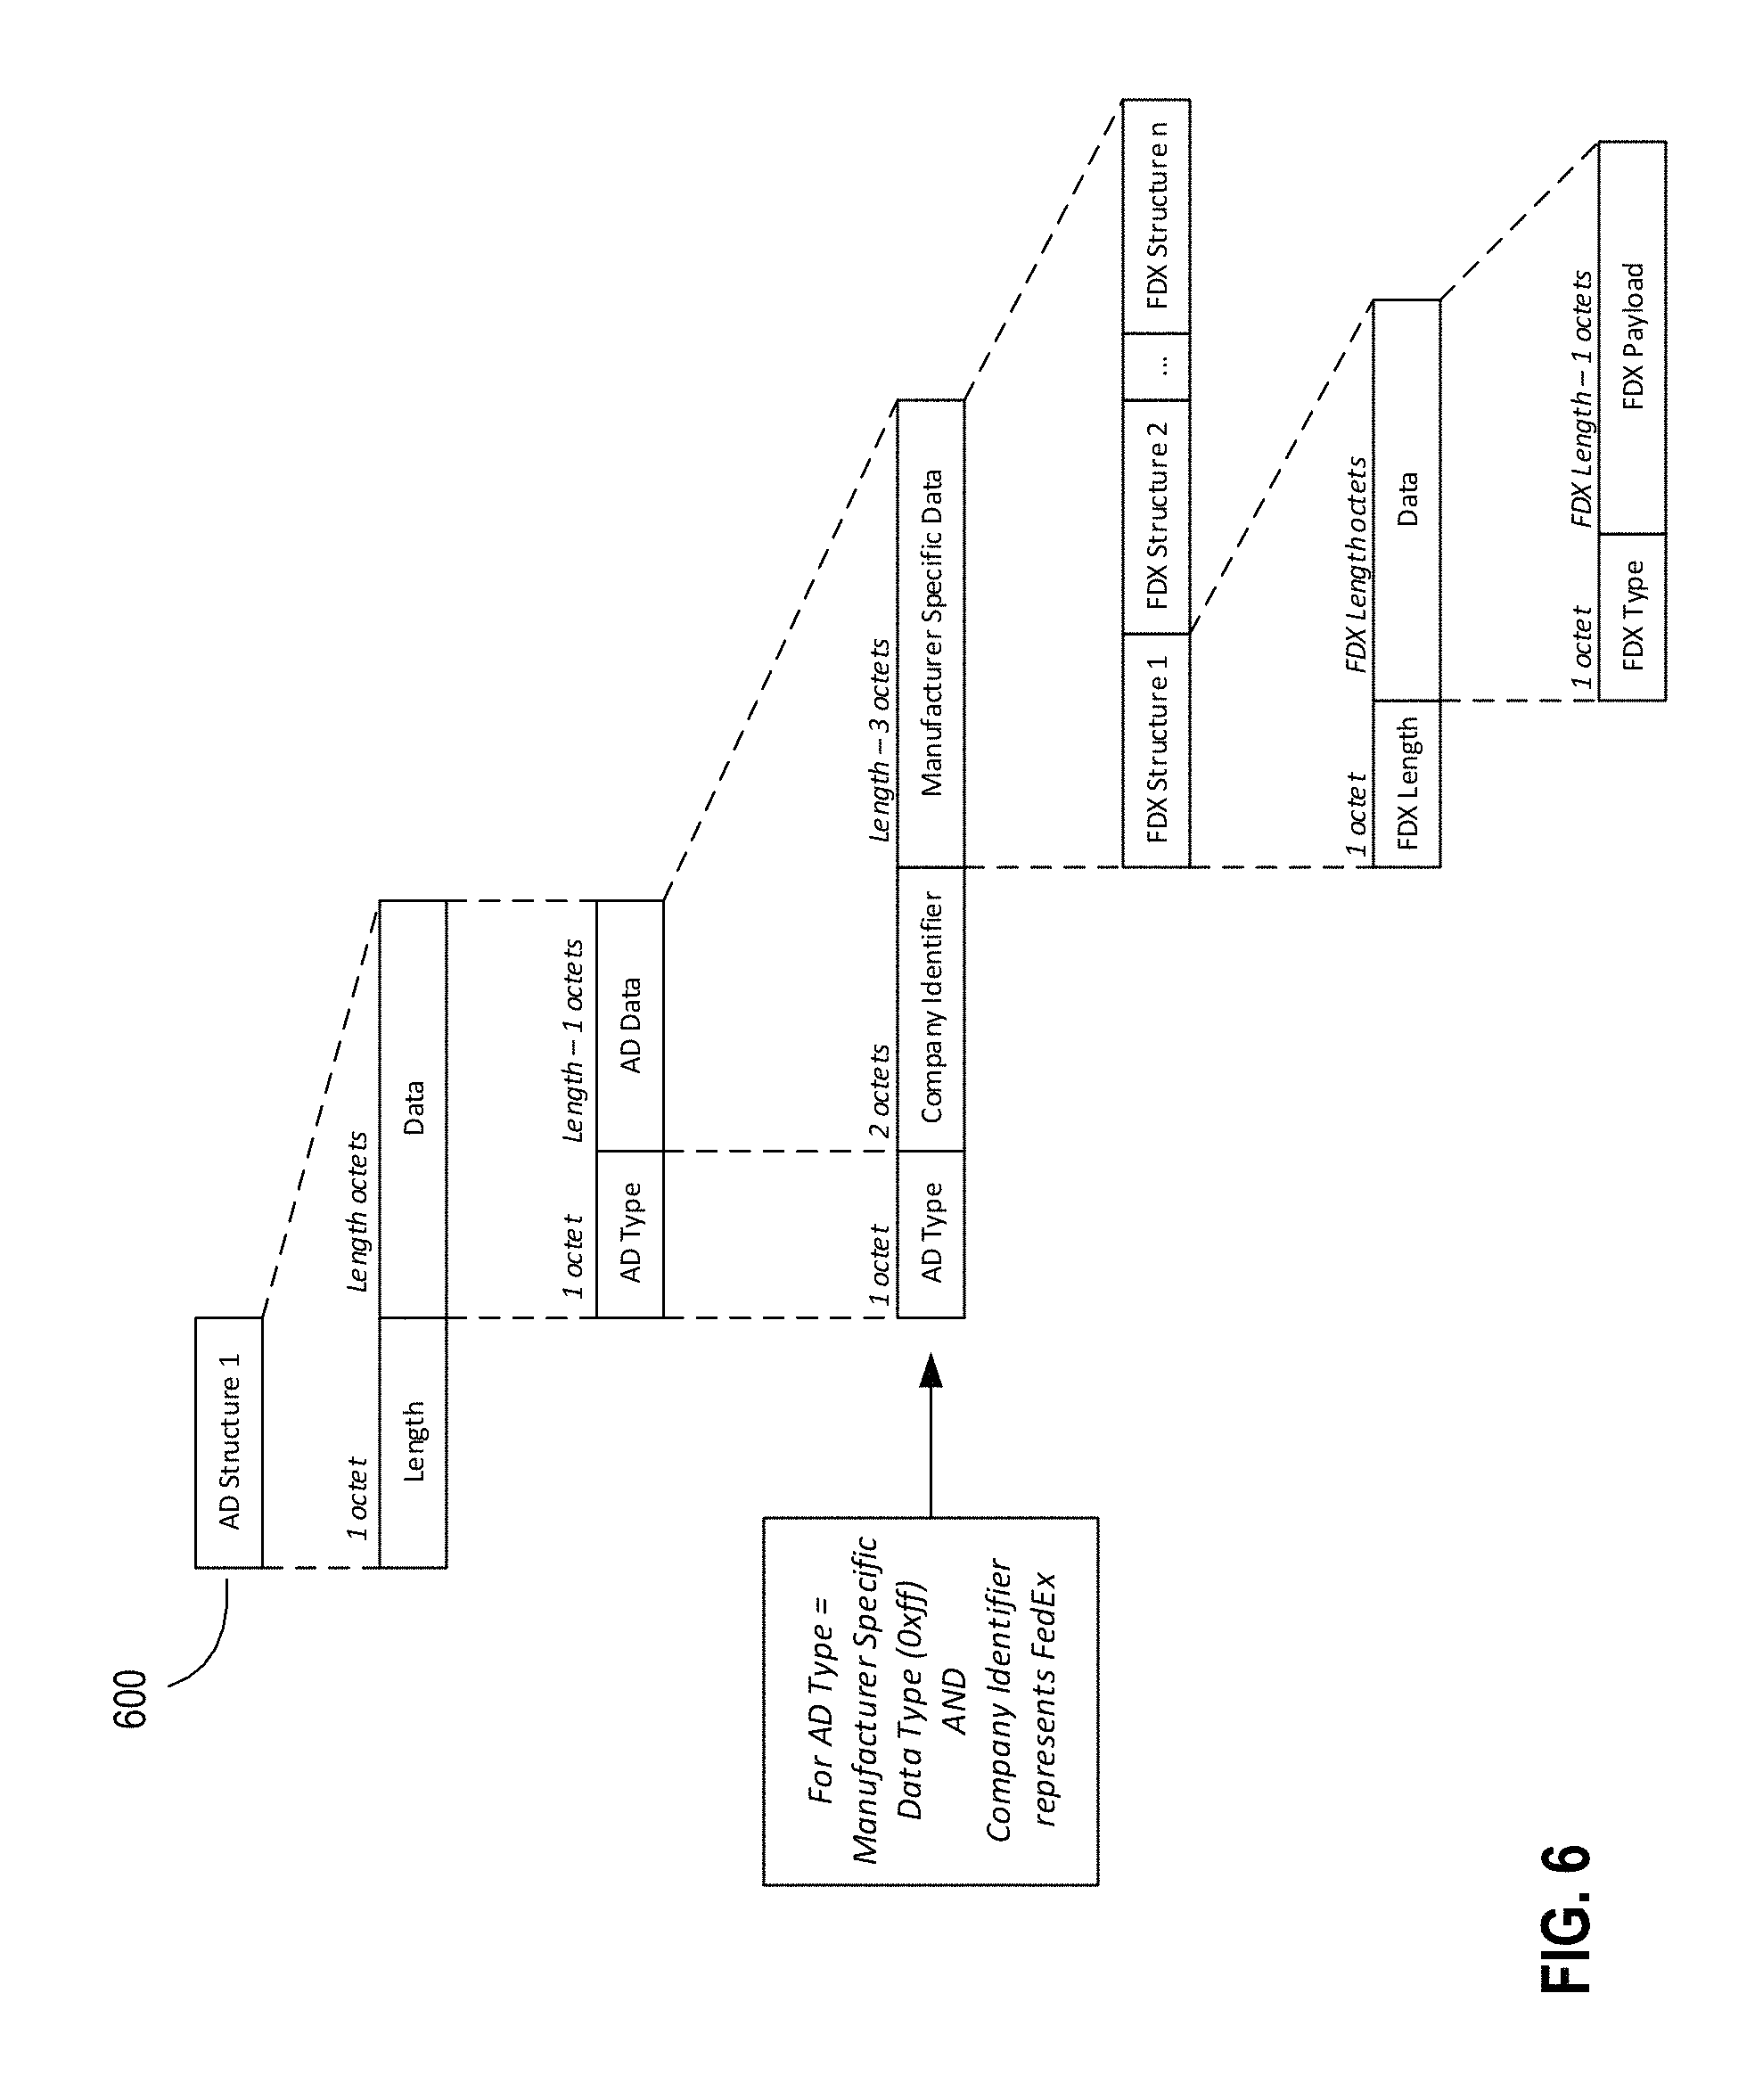 Patent Us 9984348 B2 Overhead Crane Wiring Diagram In Addition Solar Panel Regulator Charge